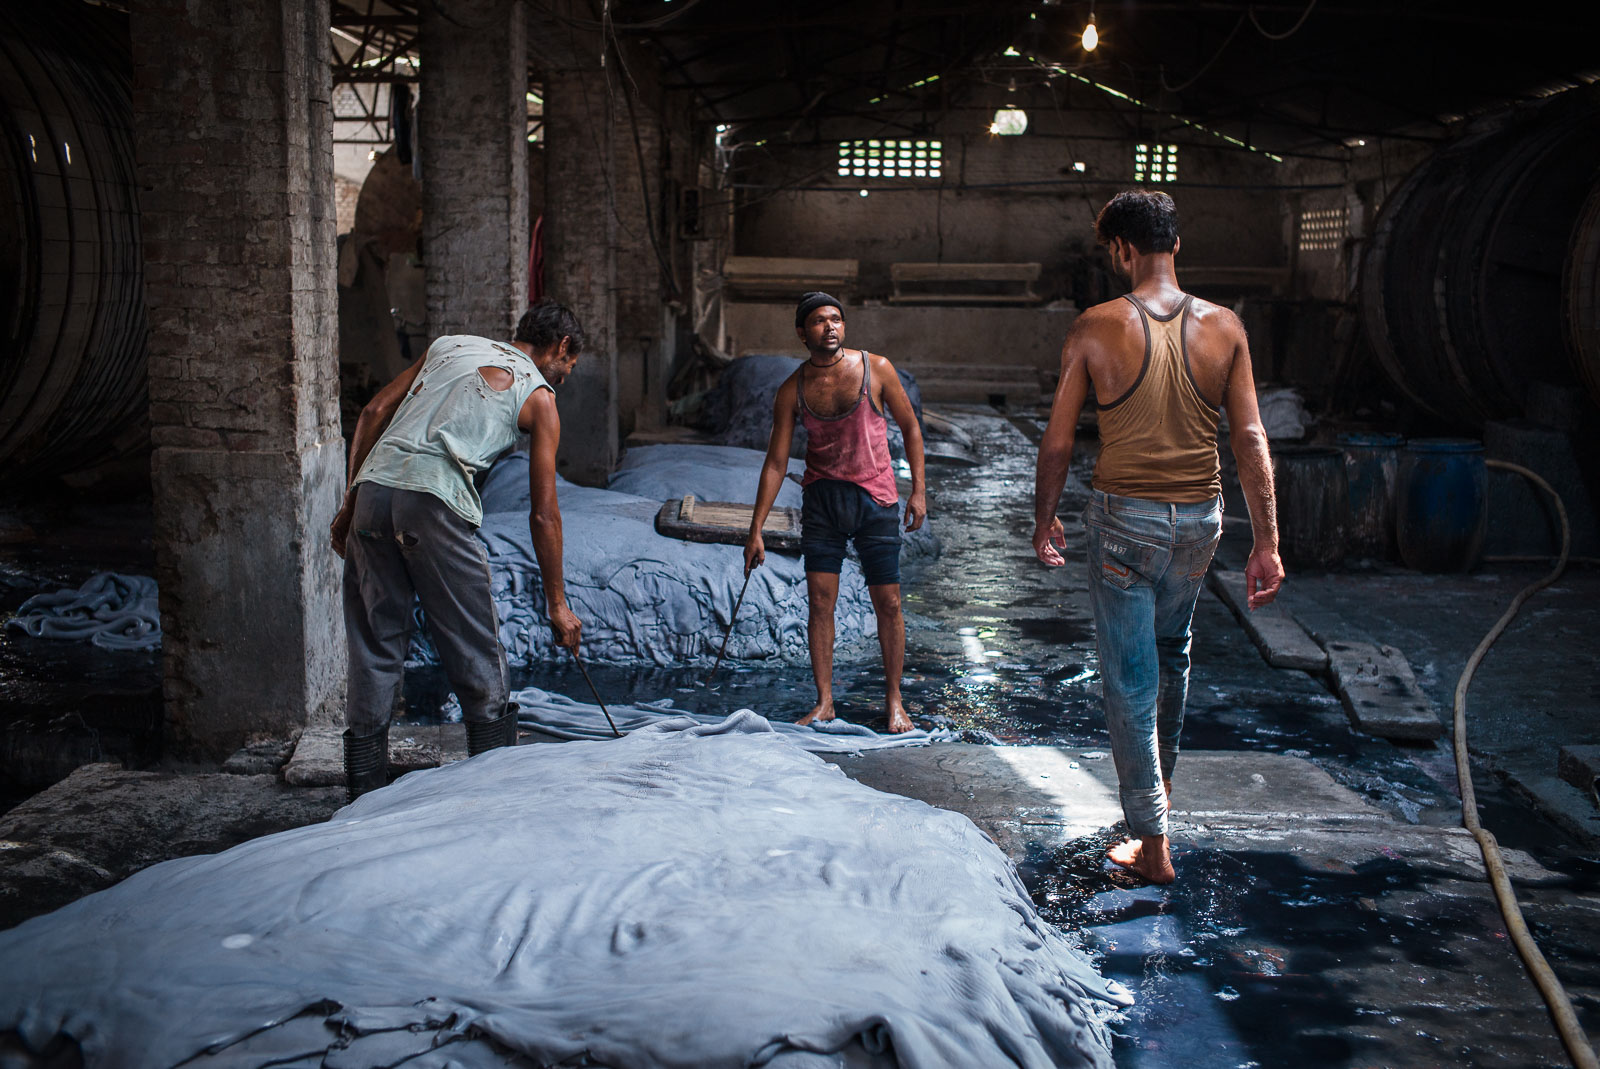 florian_lang_kanpur-leather_industry-6